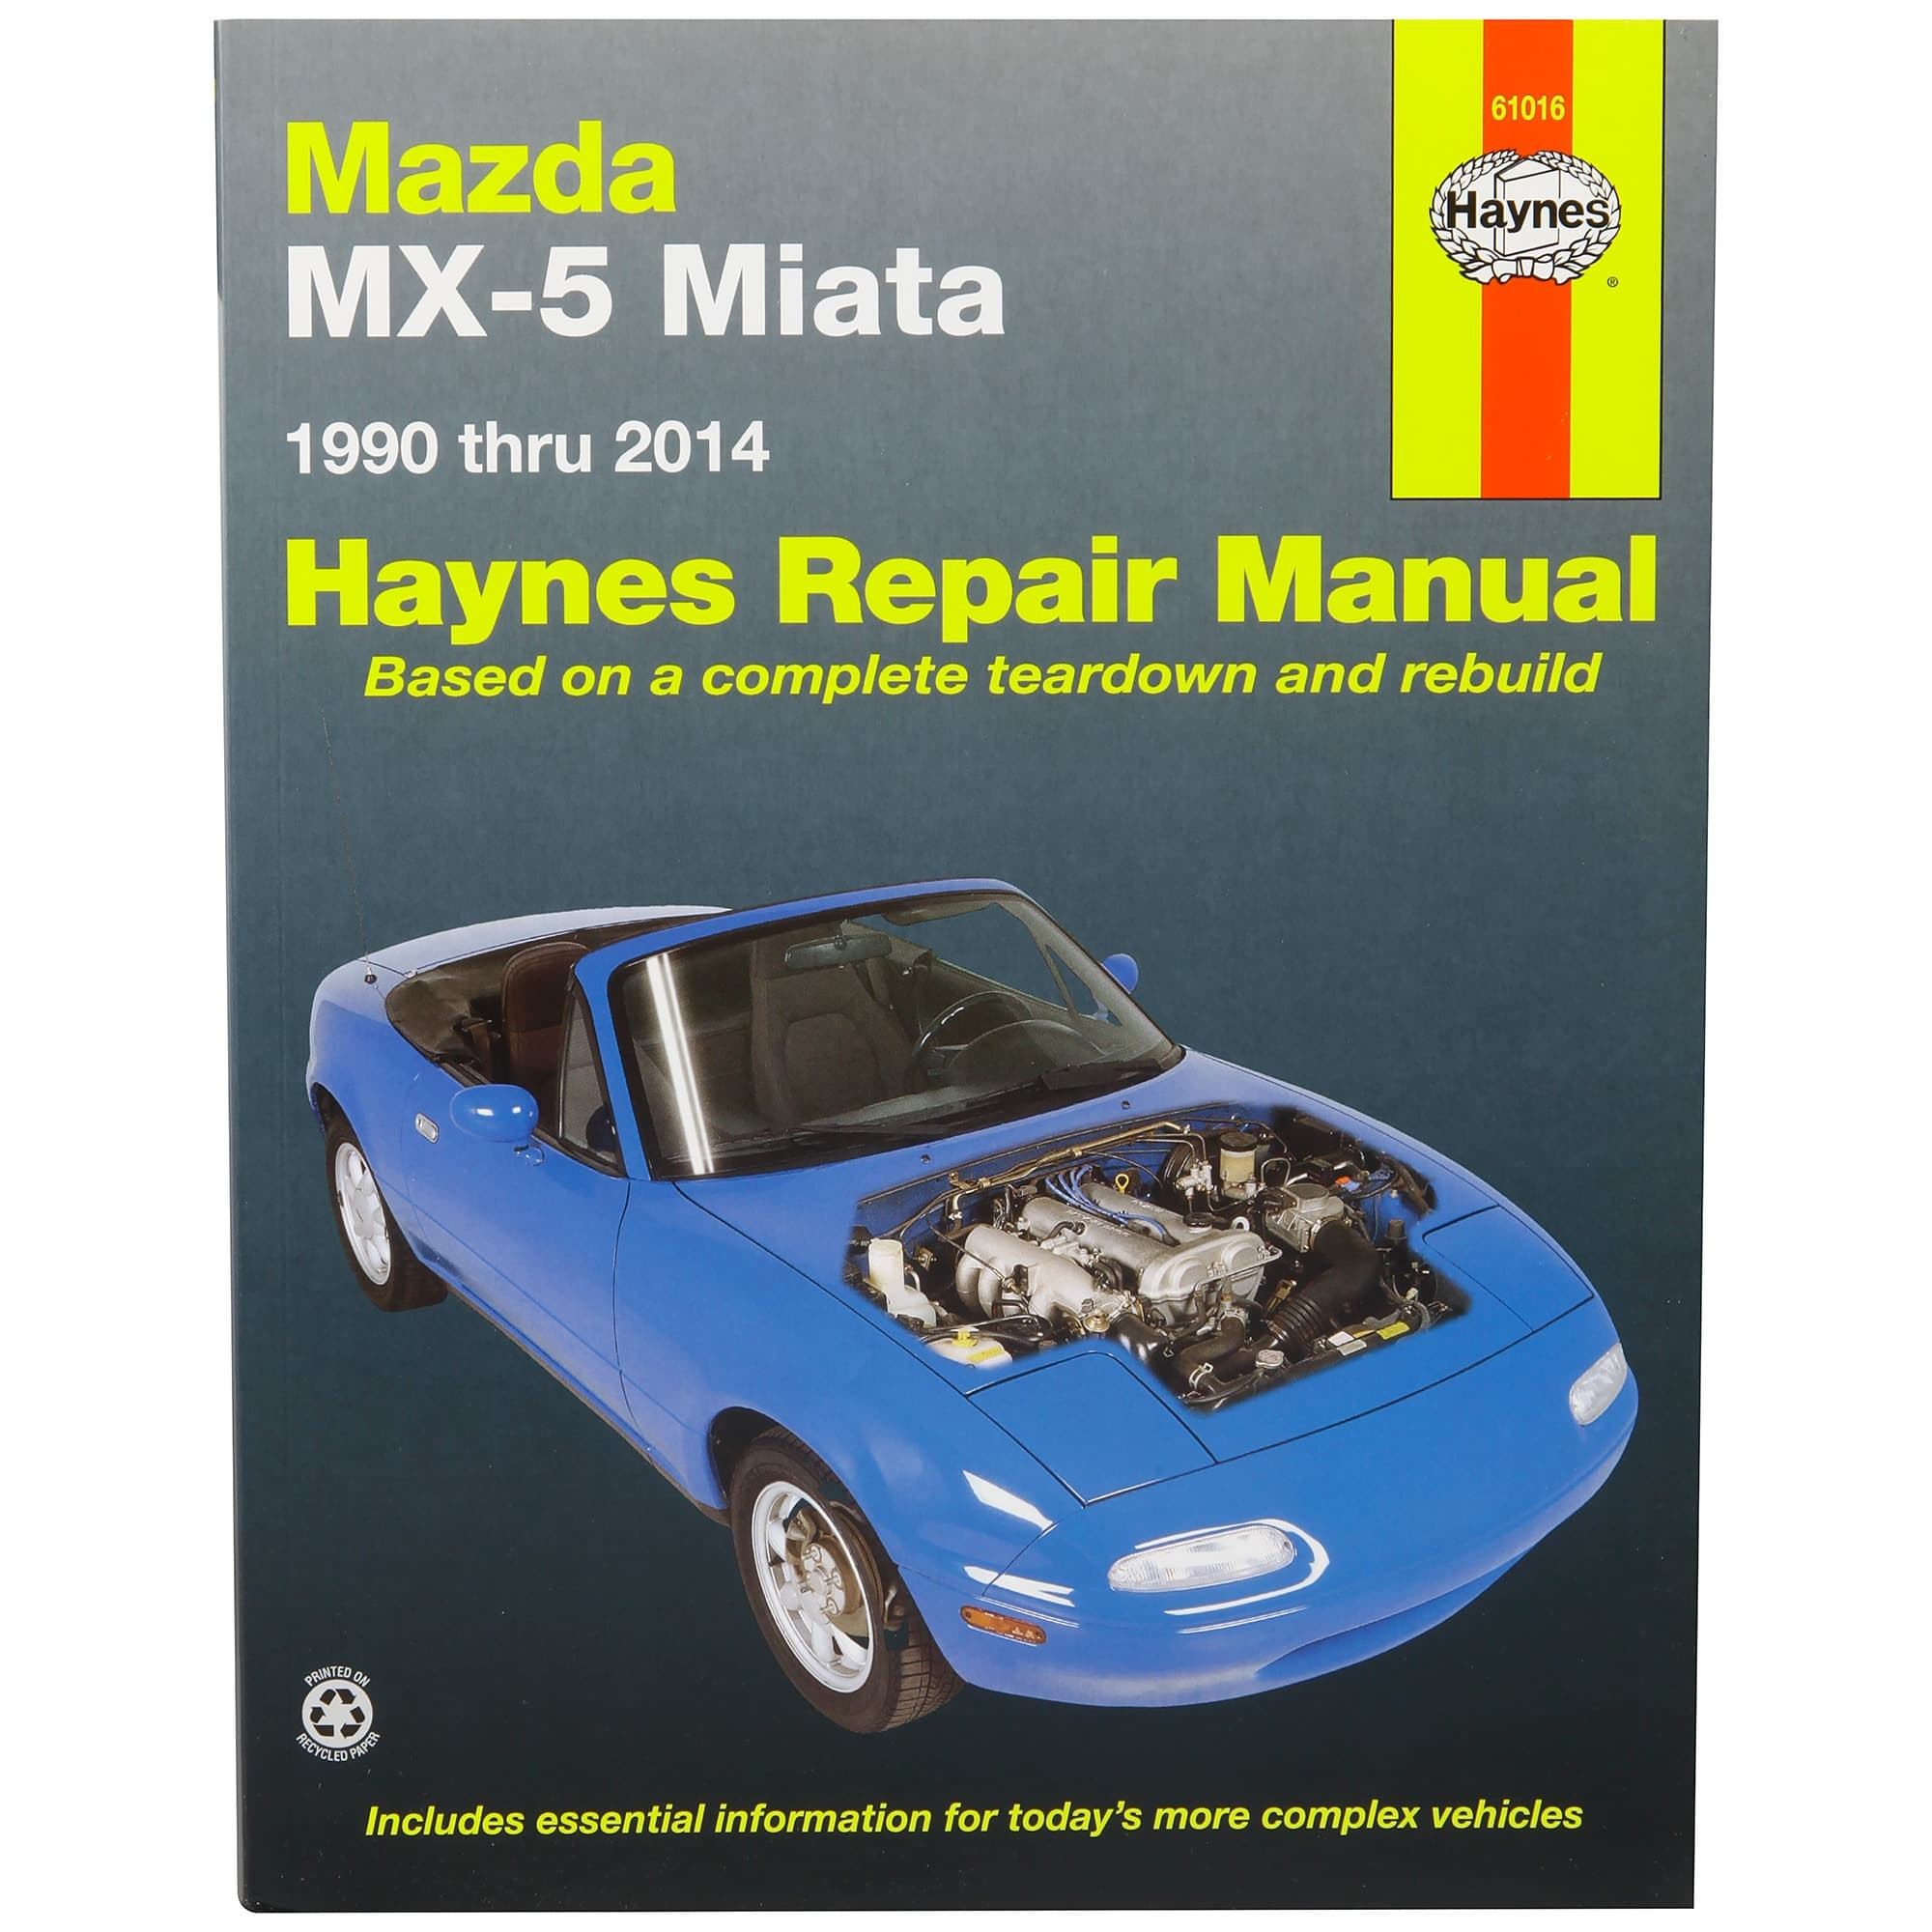 211 571 book haynes repair manual mossmiata rh mossmiata com 1993 mazda miata owners manual pdf 1993 mazda miata service manual